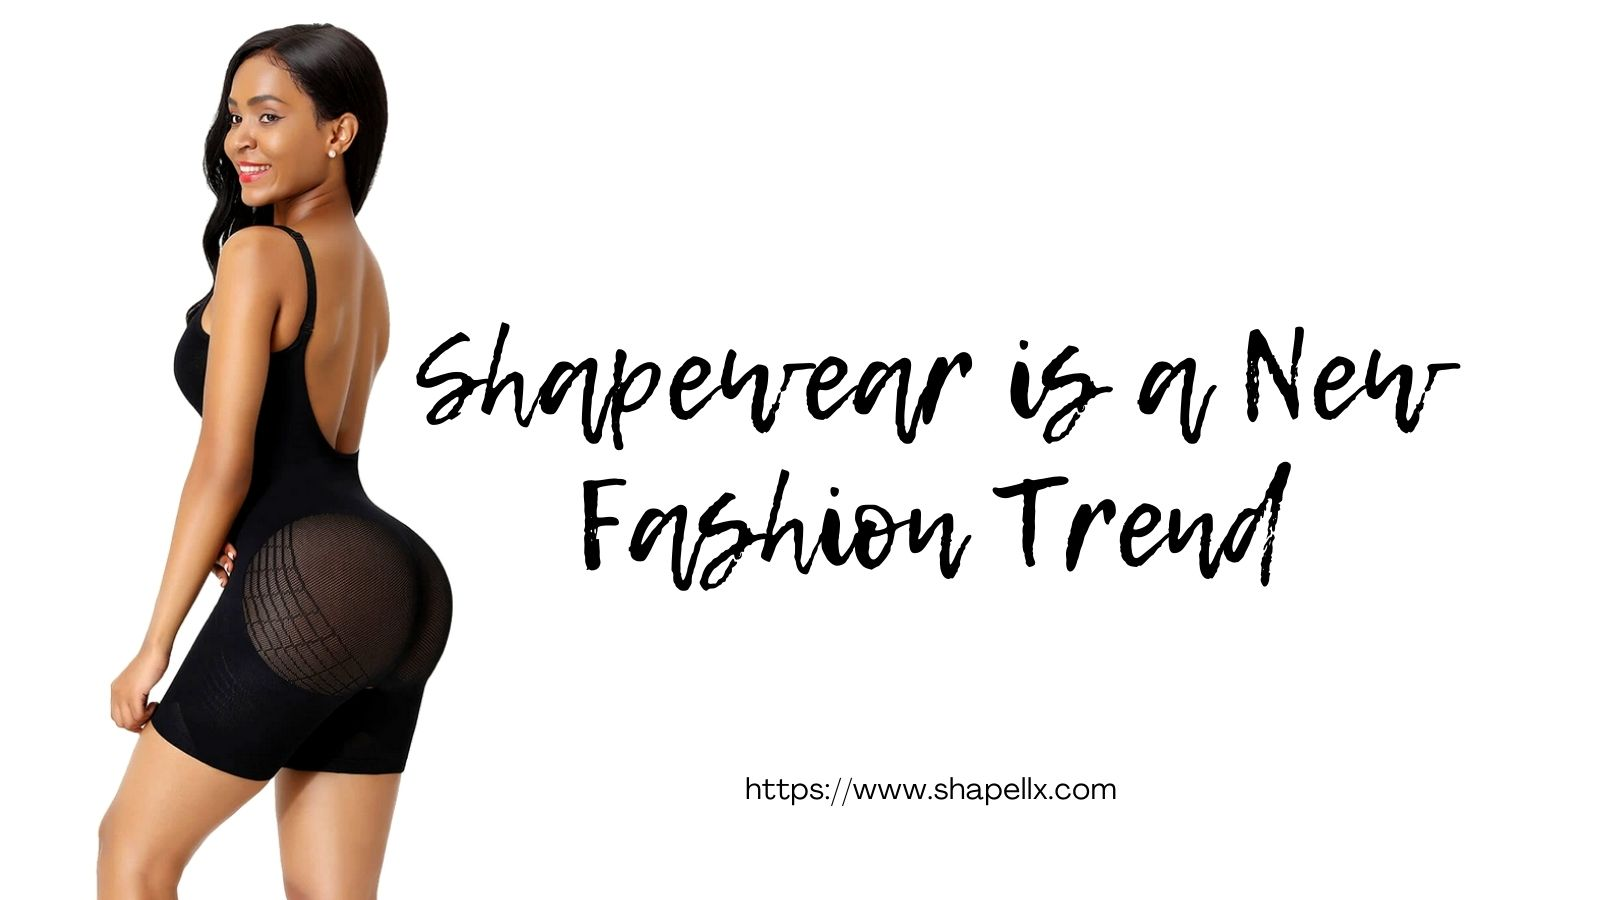 Shapewear is a New Fashion Trend